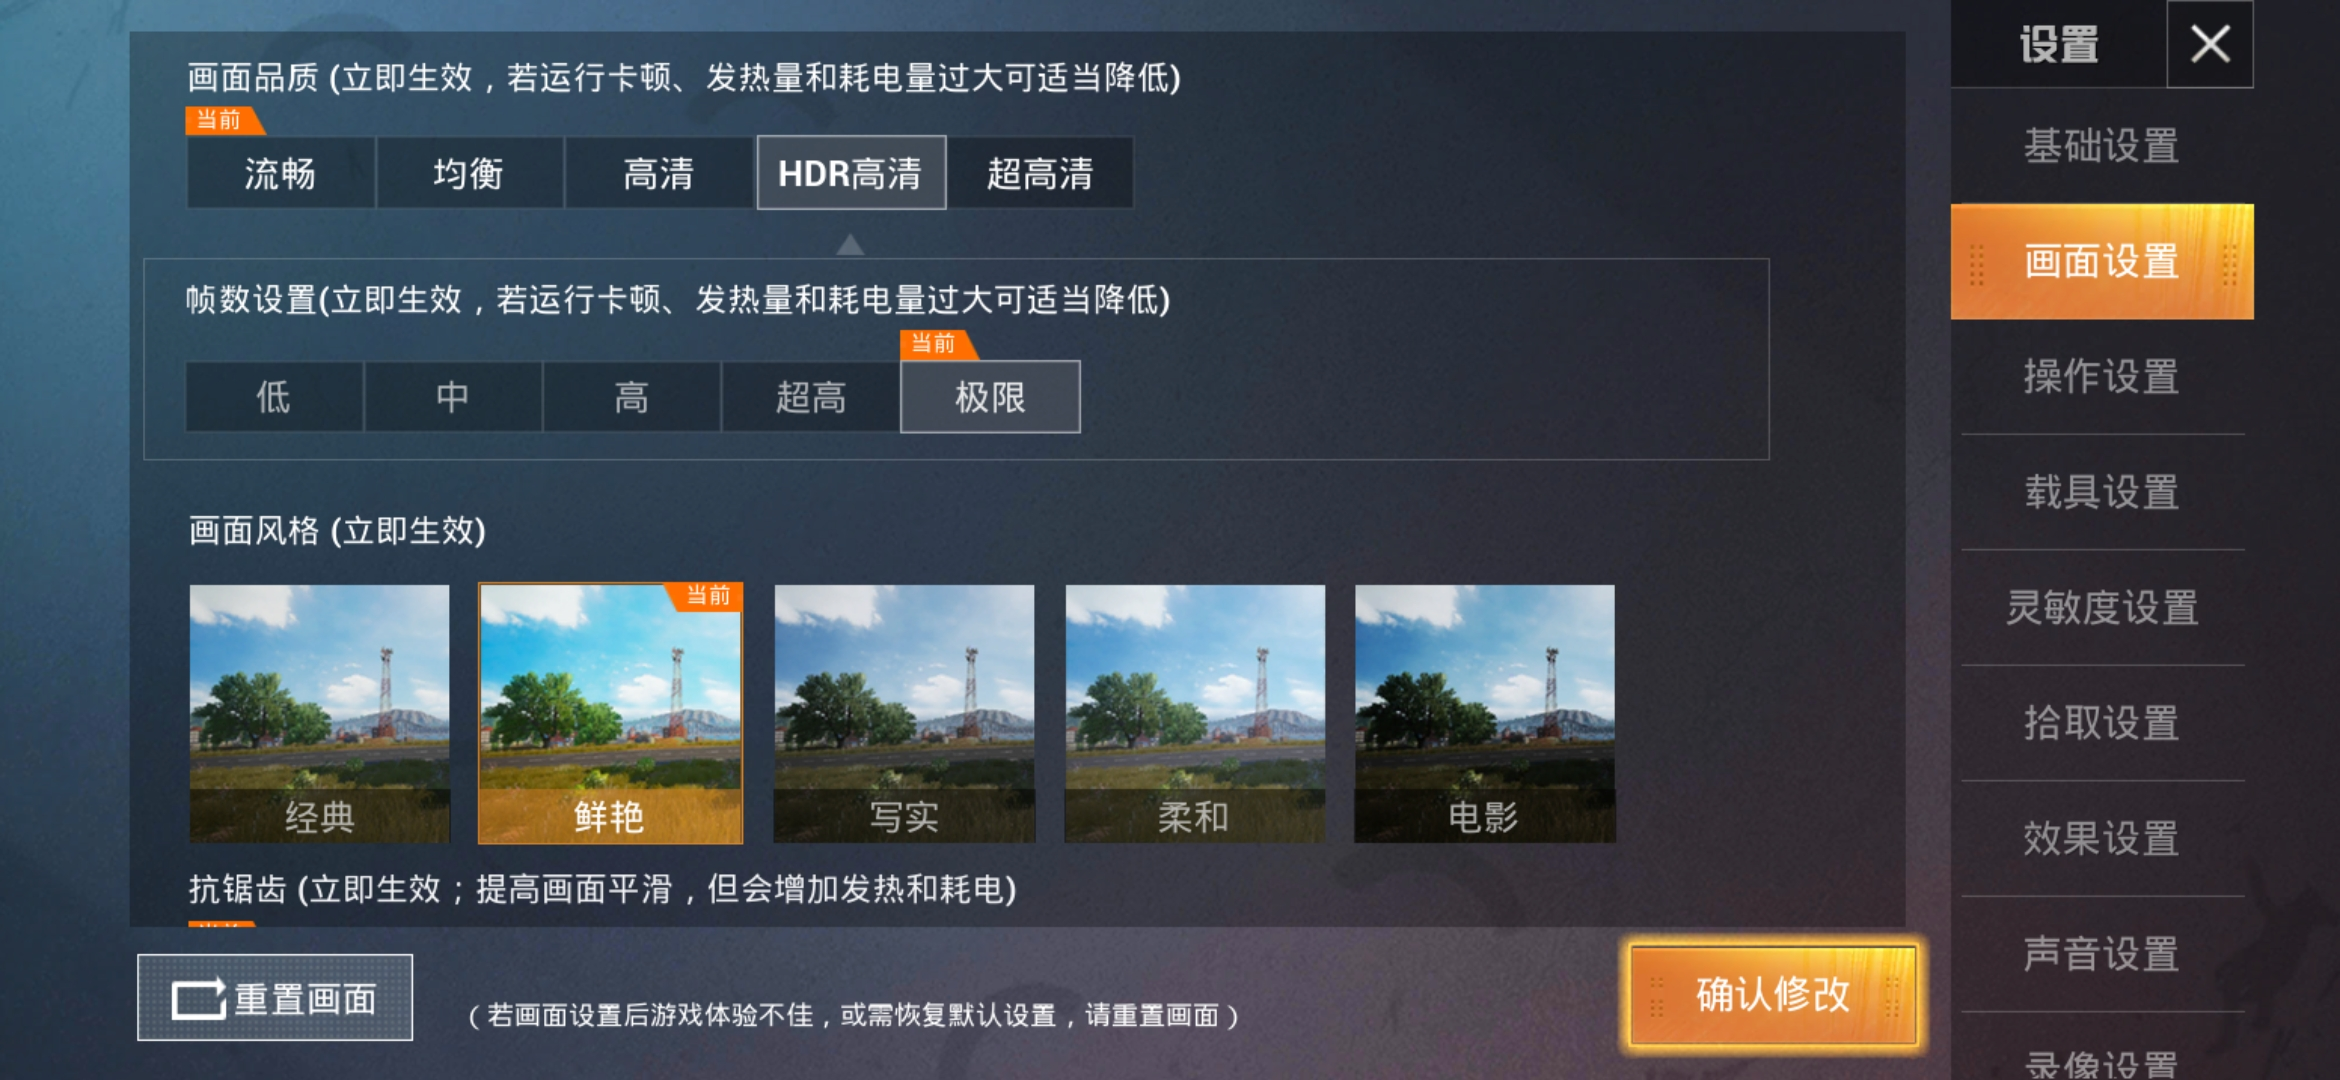 Screenshot_20200408_195754_com.tencent.tmgp.pubgmhd.jpg